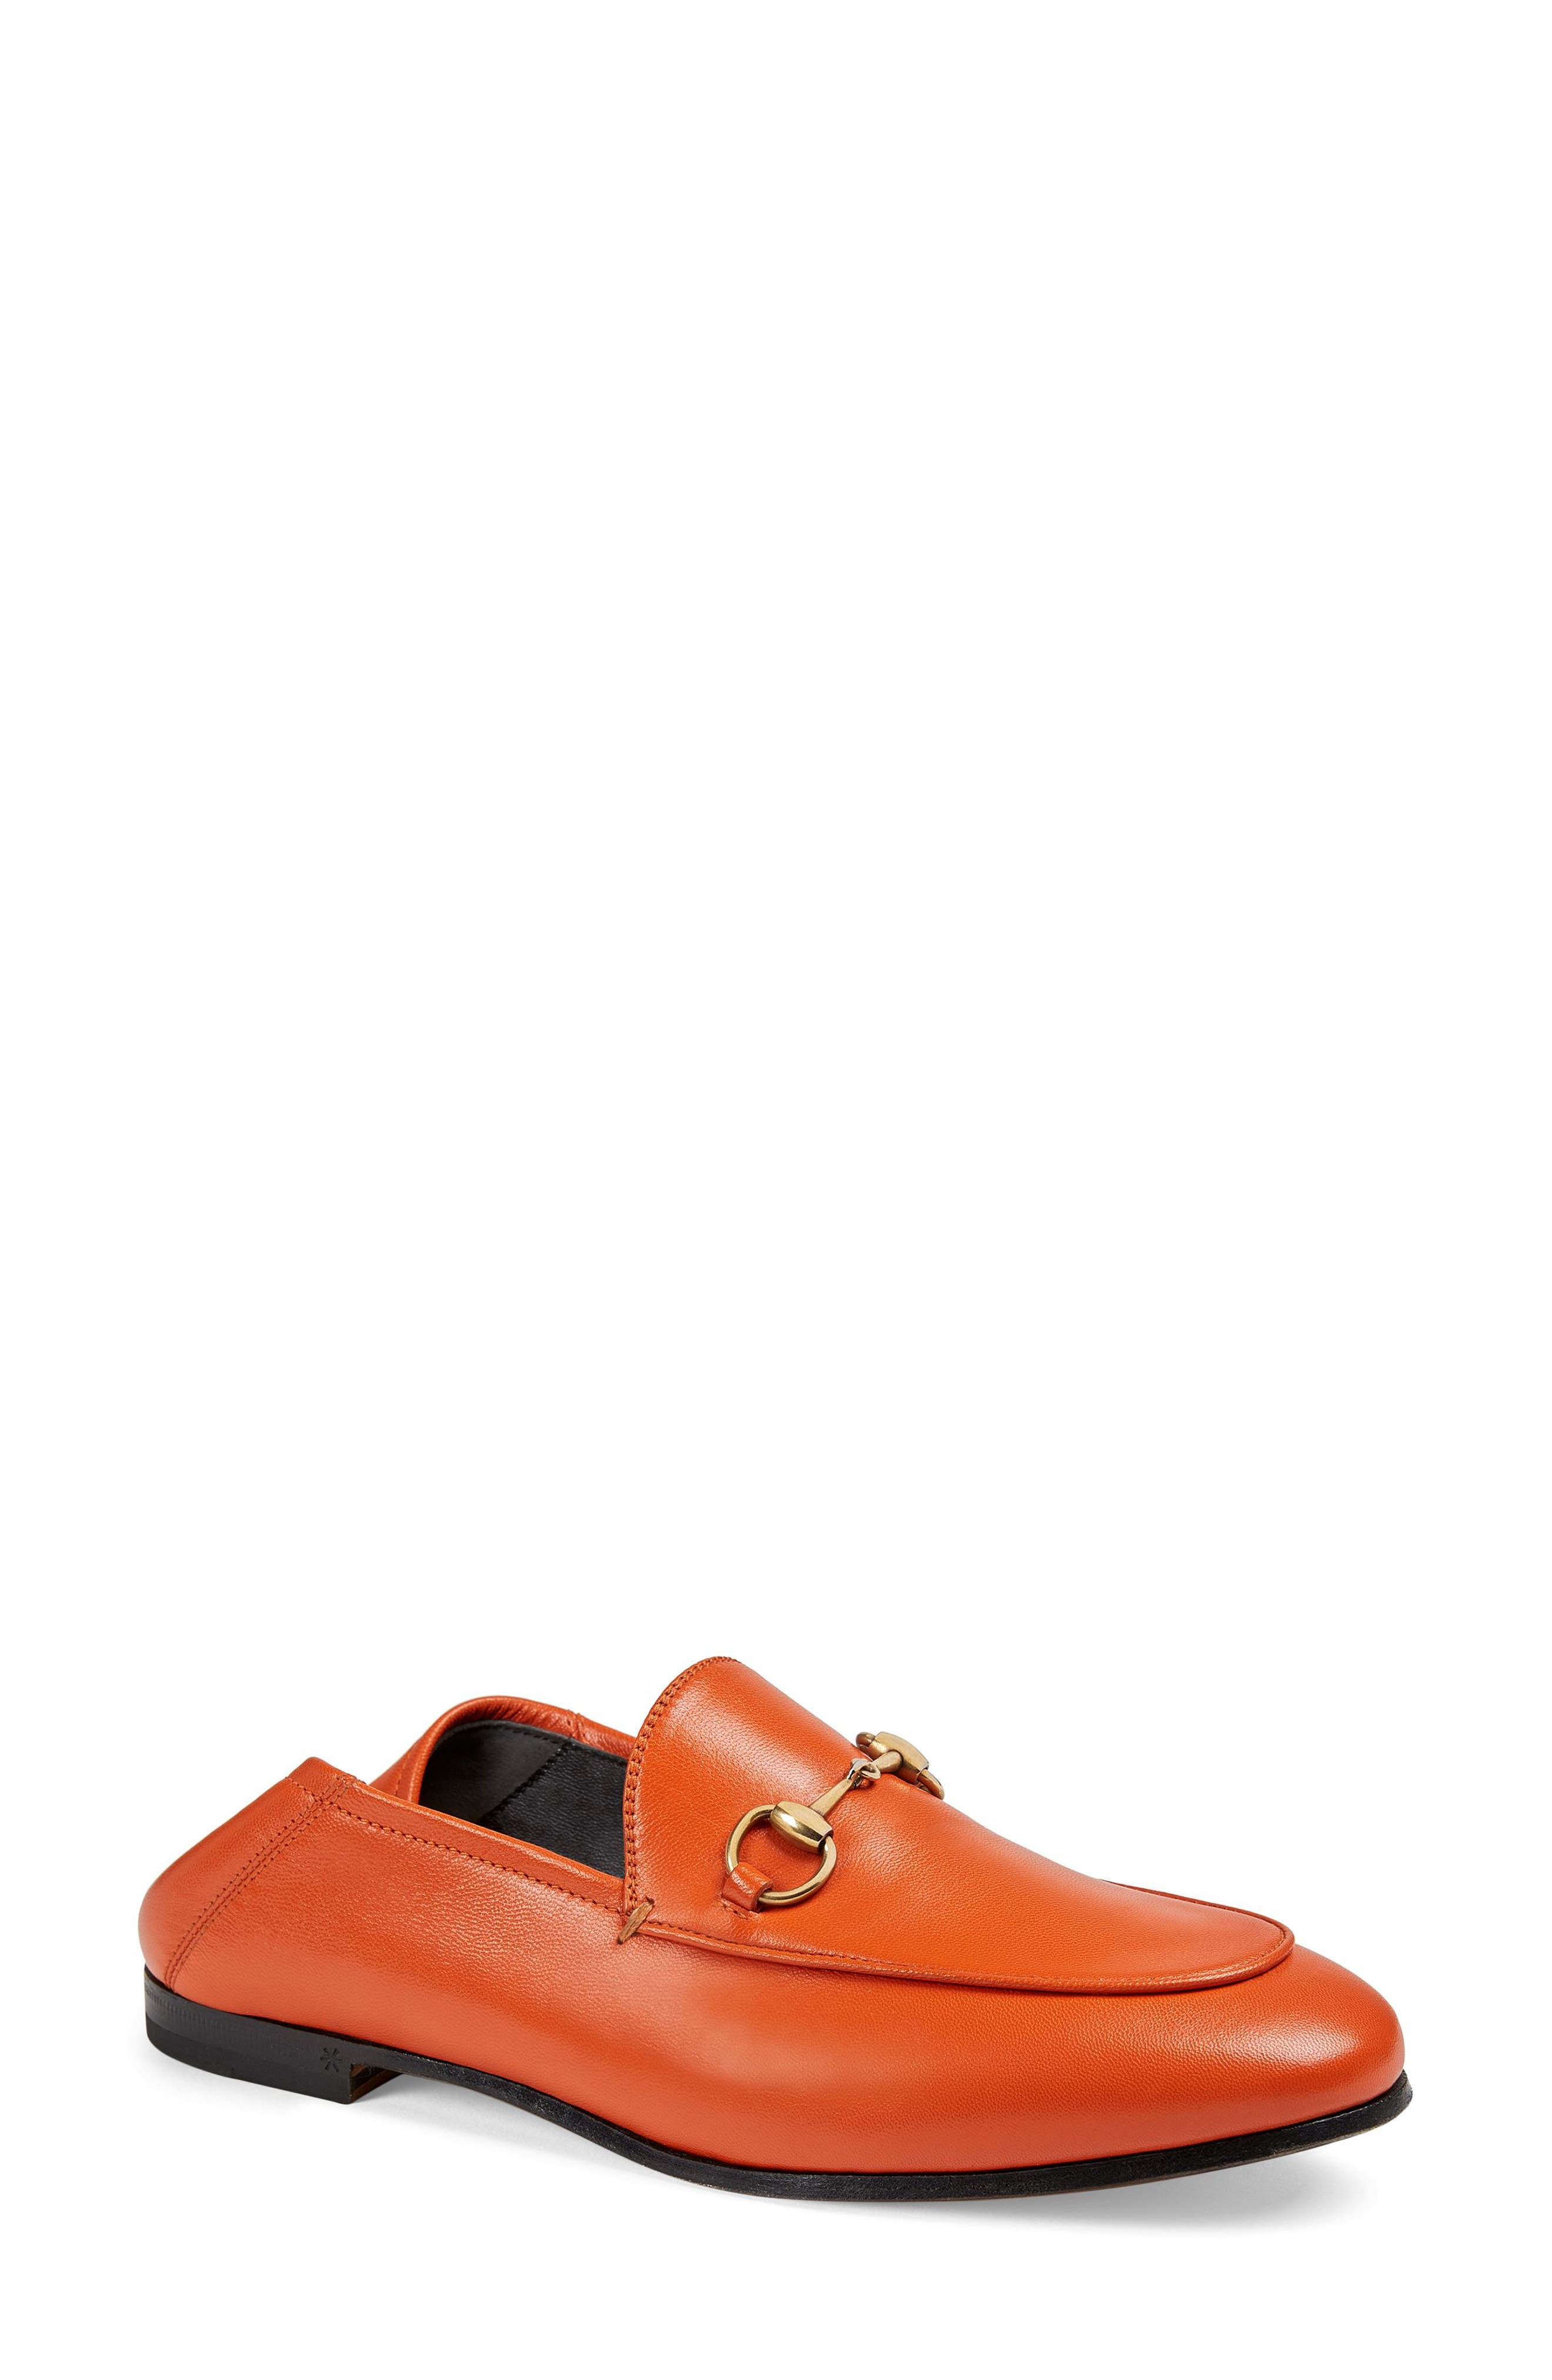 Convertible Loafer,                         Main,                         color, DEEP ORANGE